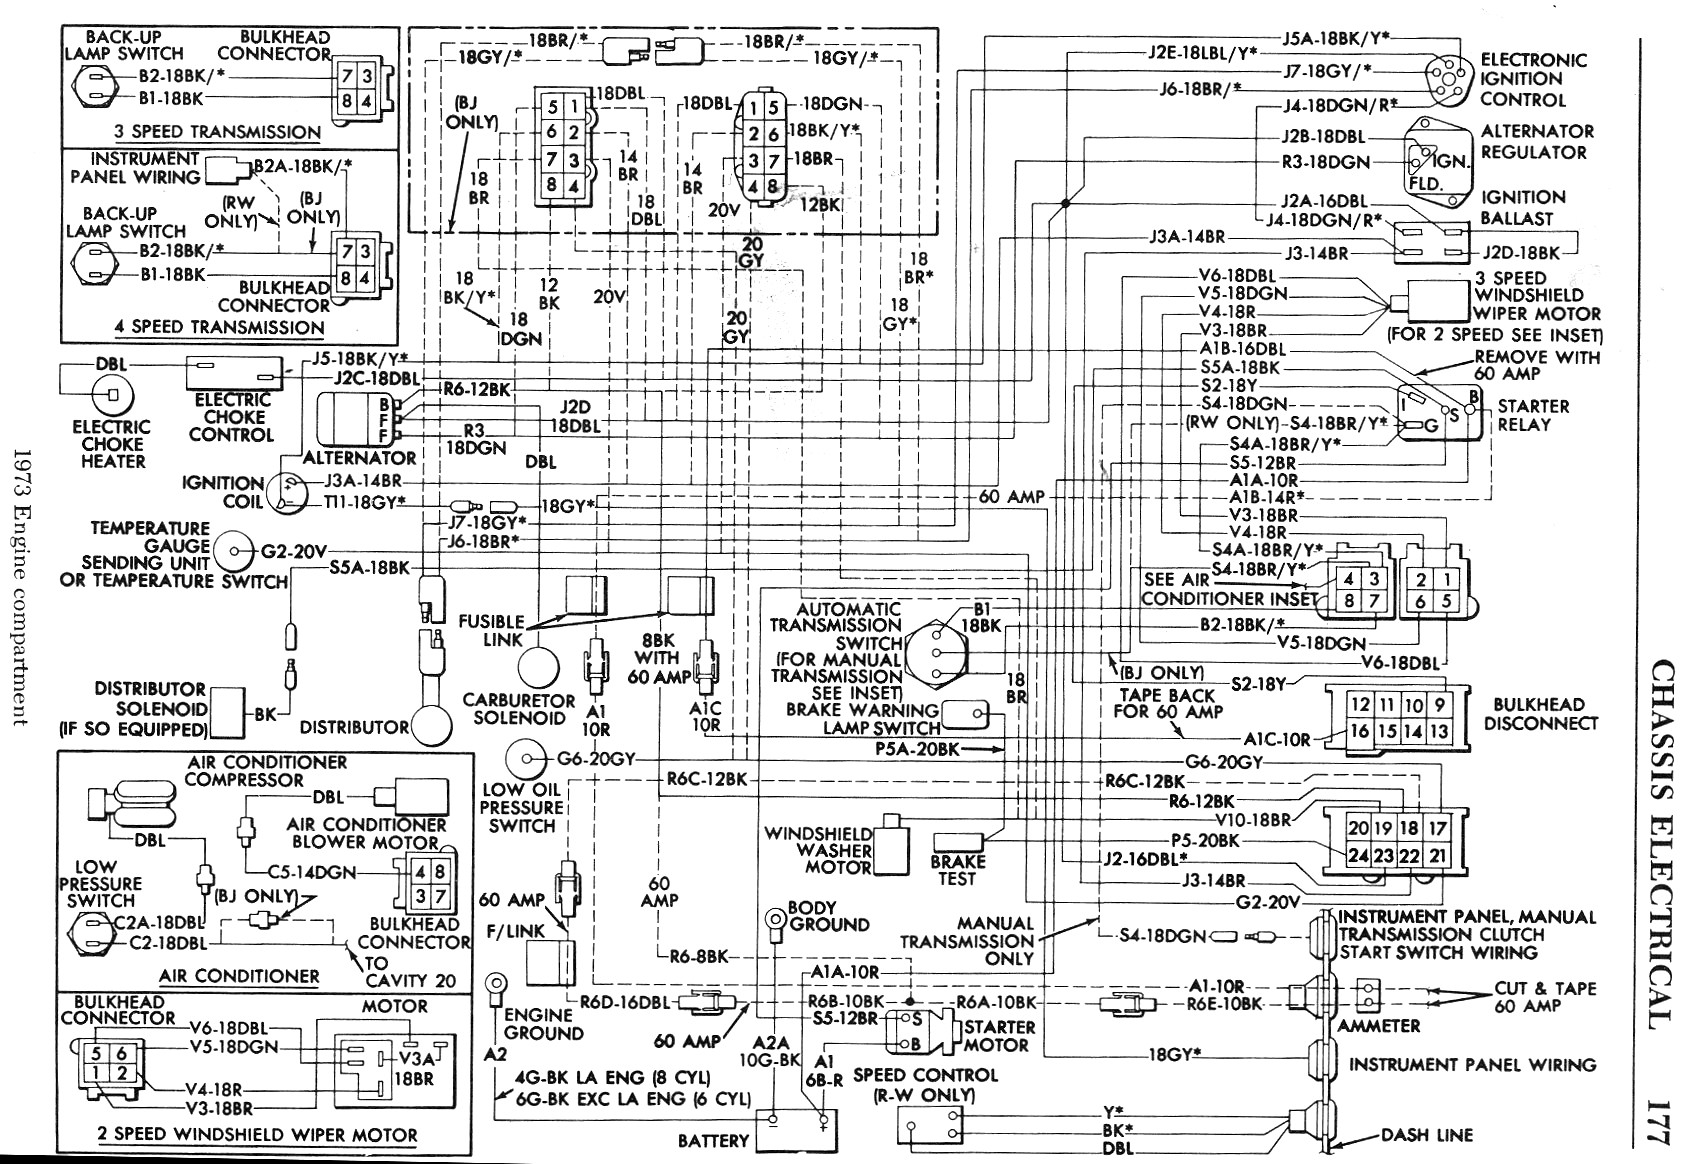 1969 chevy c10 wiring diagram another blog about wiring diagram \u2022 1989 chevy 1500 engine diagram wiring diagram 1966 chevy c10 truck get free image about 1969 chevy truck tail light wiring diagram